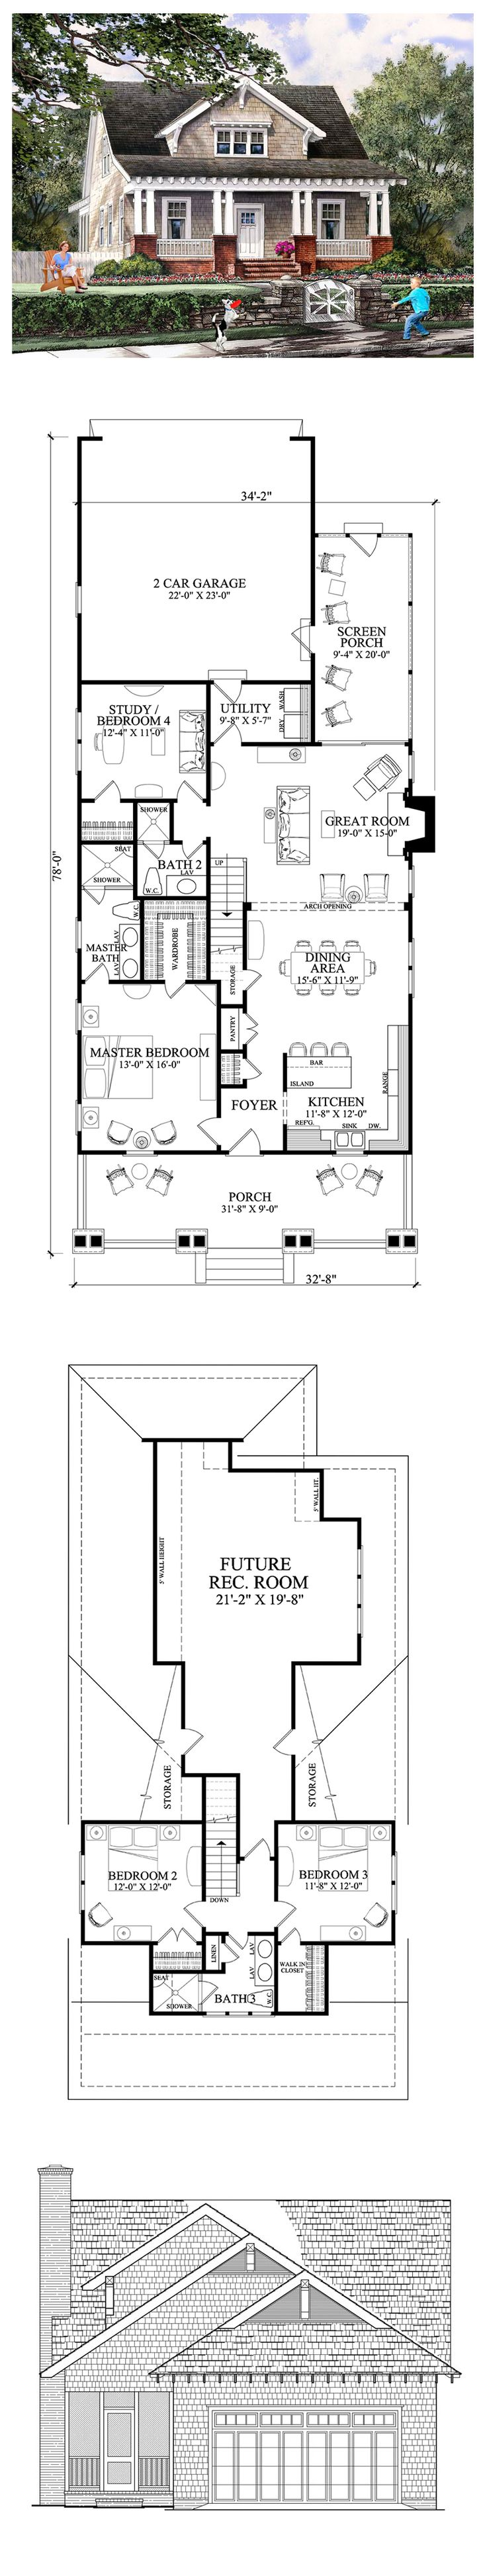 Small Cottage House Plans best 25+ cottage house plans ideas on pinterest | small cottage